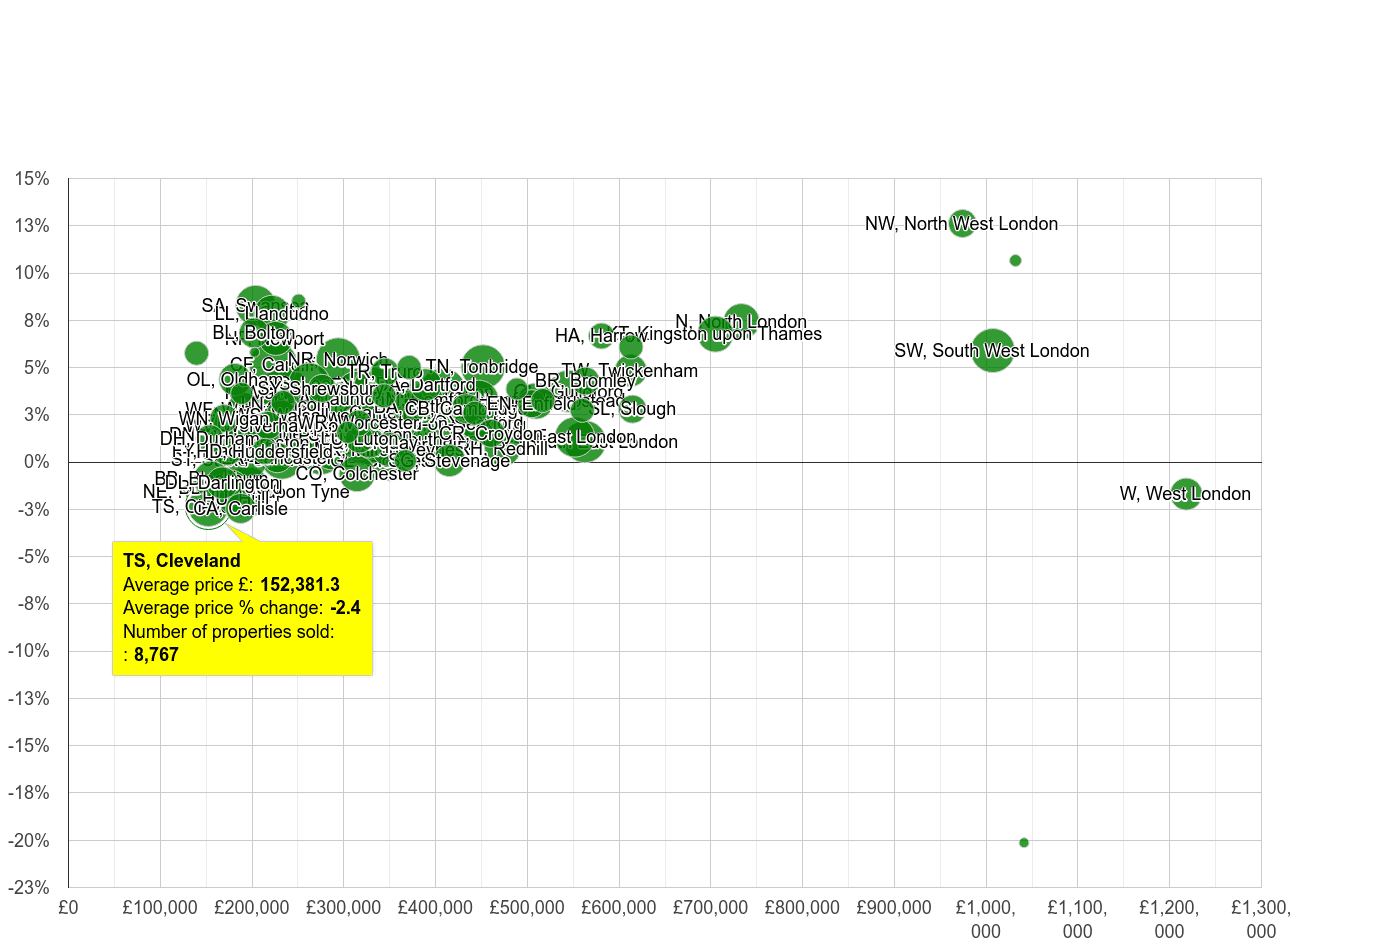 Cleveland house prices compared to other areas